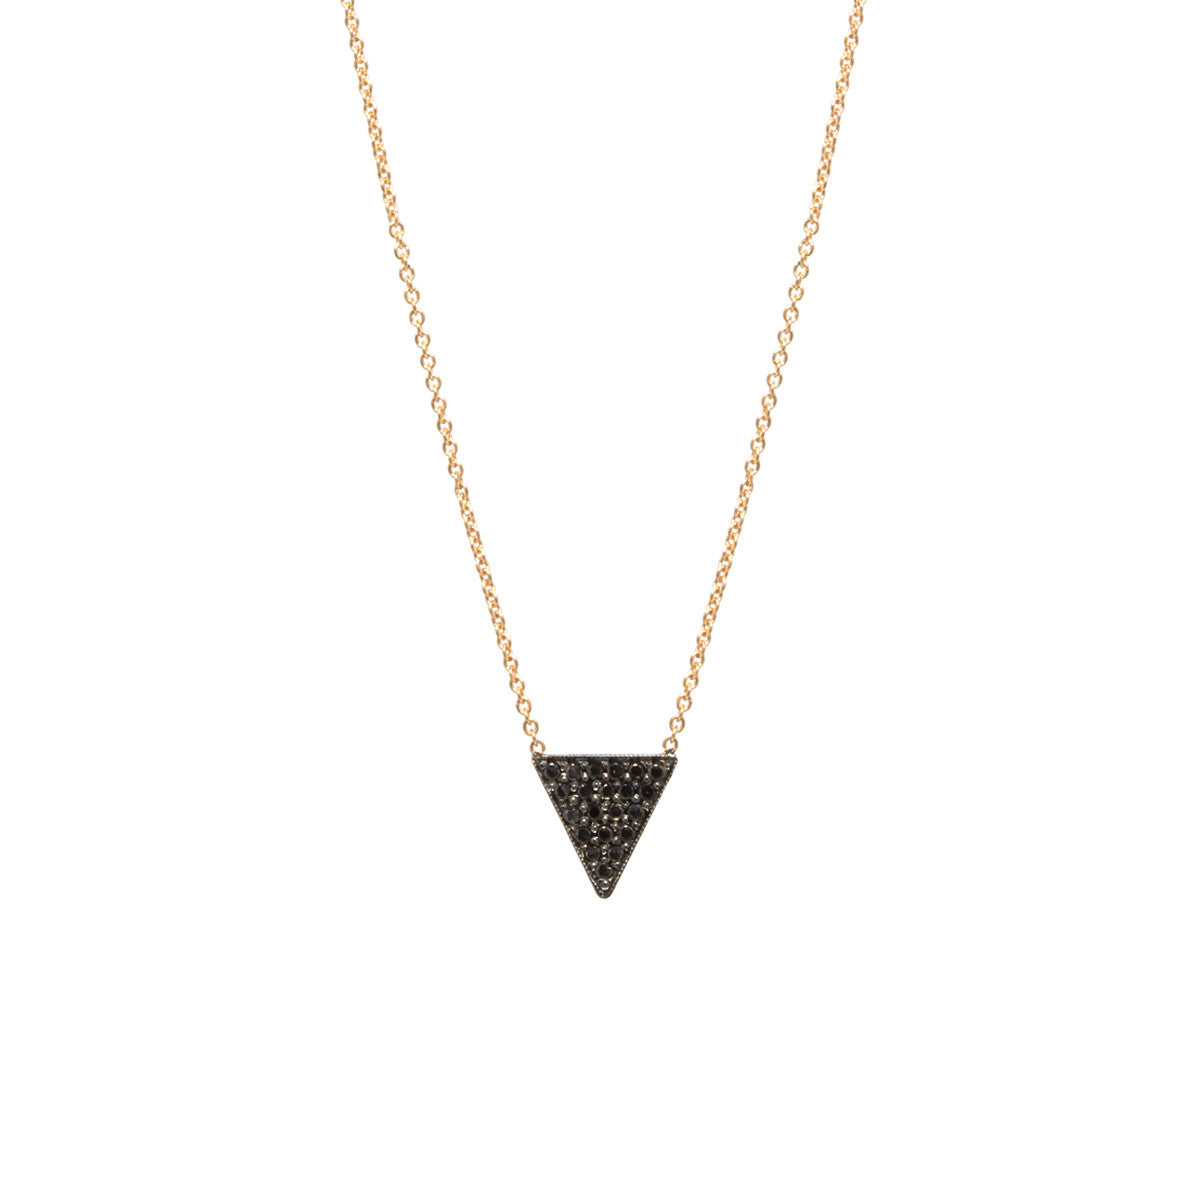 14k black pave small triangle necklace